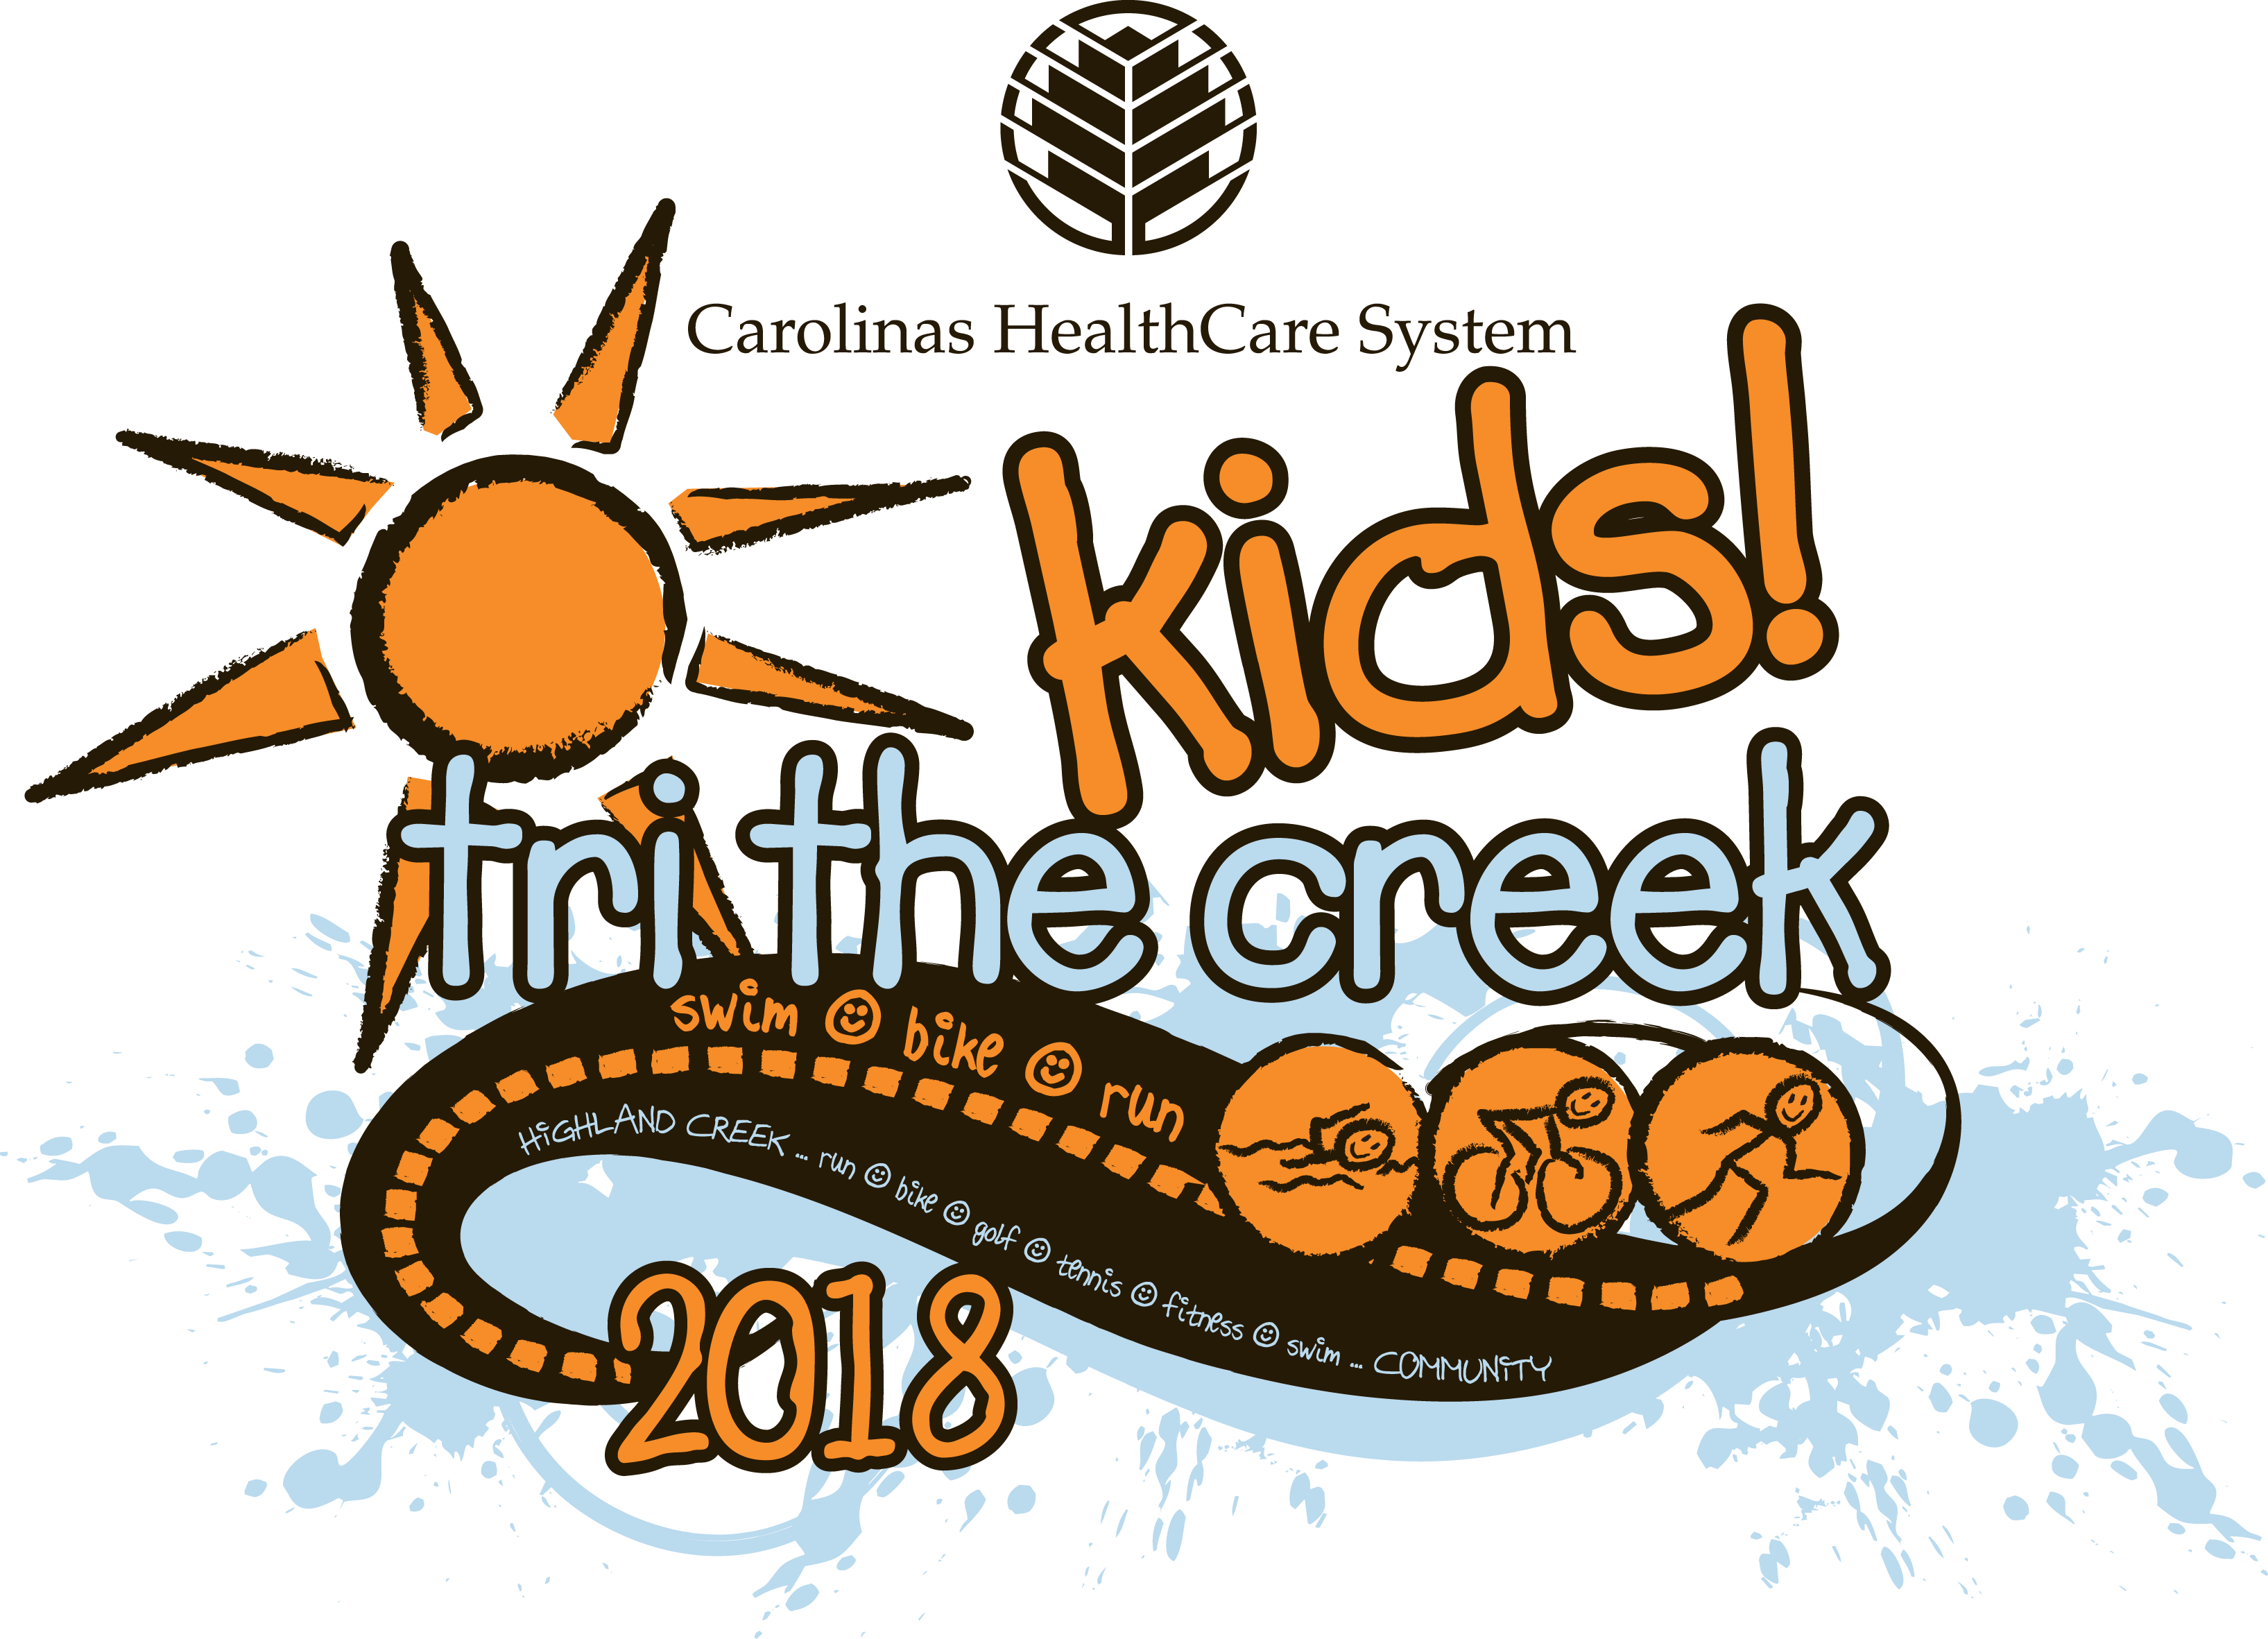 Tri the Creek 2018